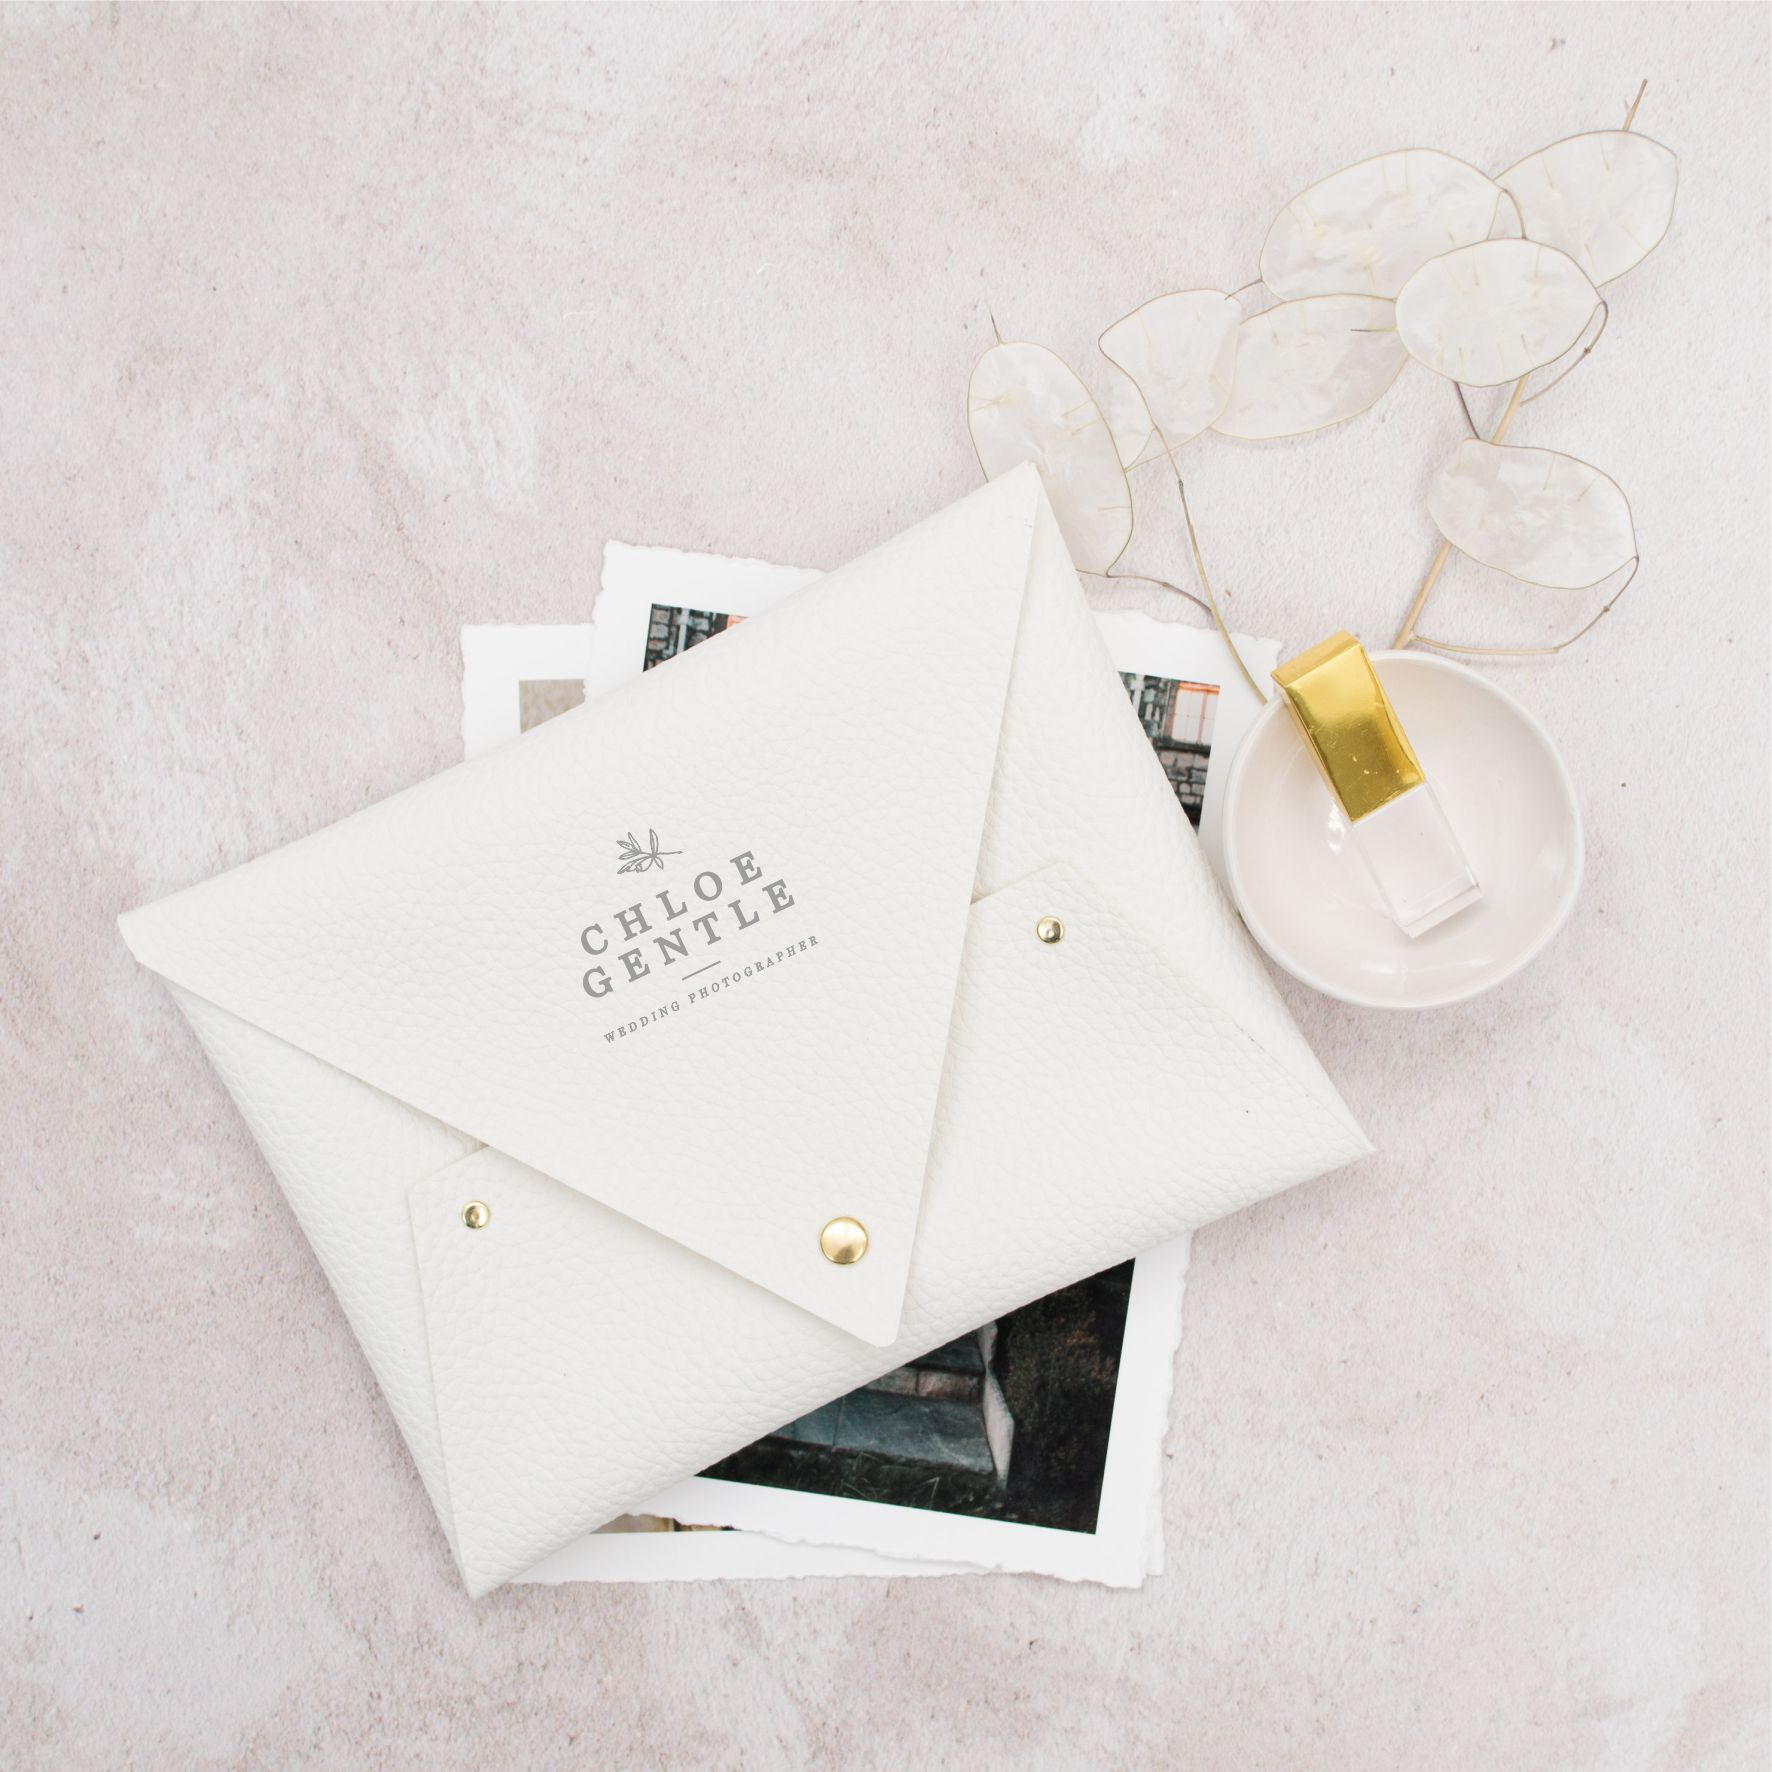 Molly_And_Tom_Print_Pouch_White_Grey_Fine_art_Photography_Wedding_Photography_Packaging.jpg